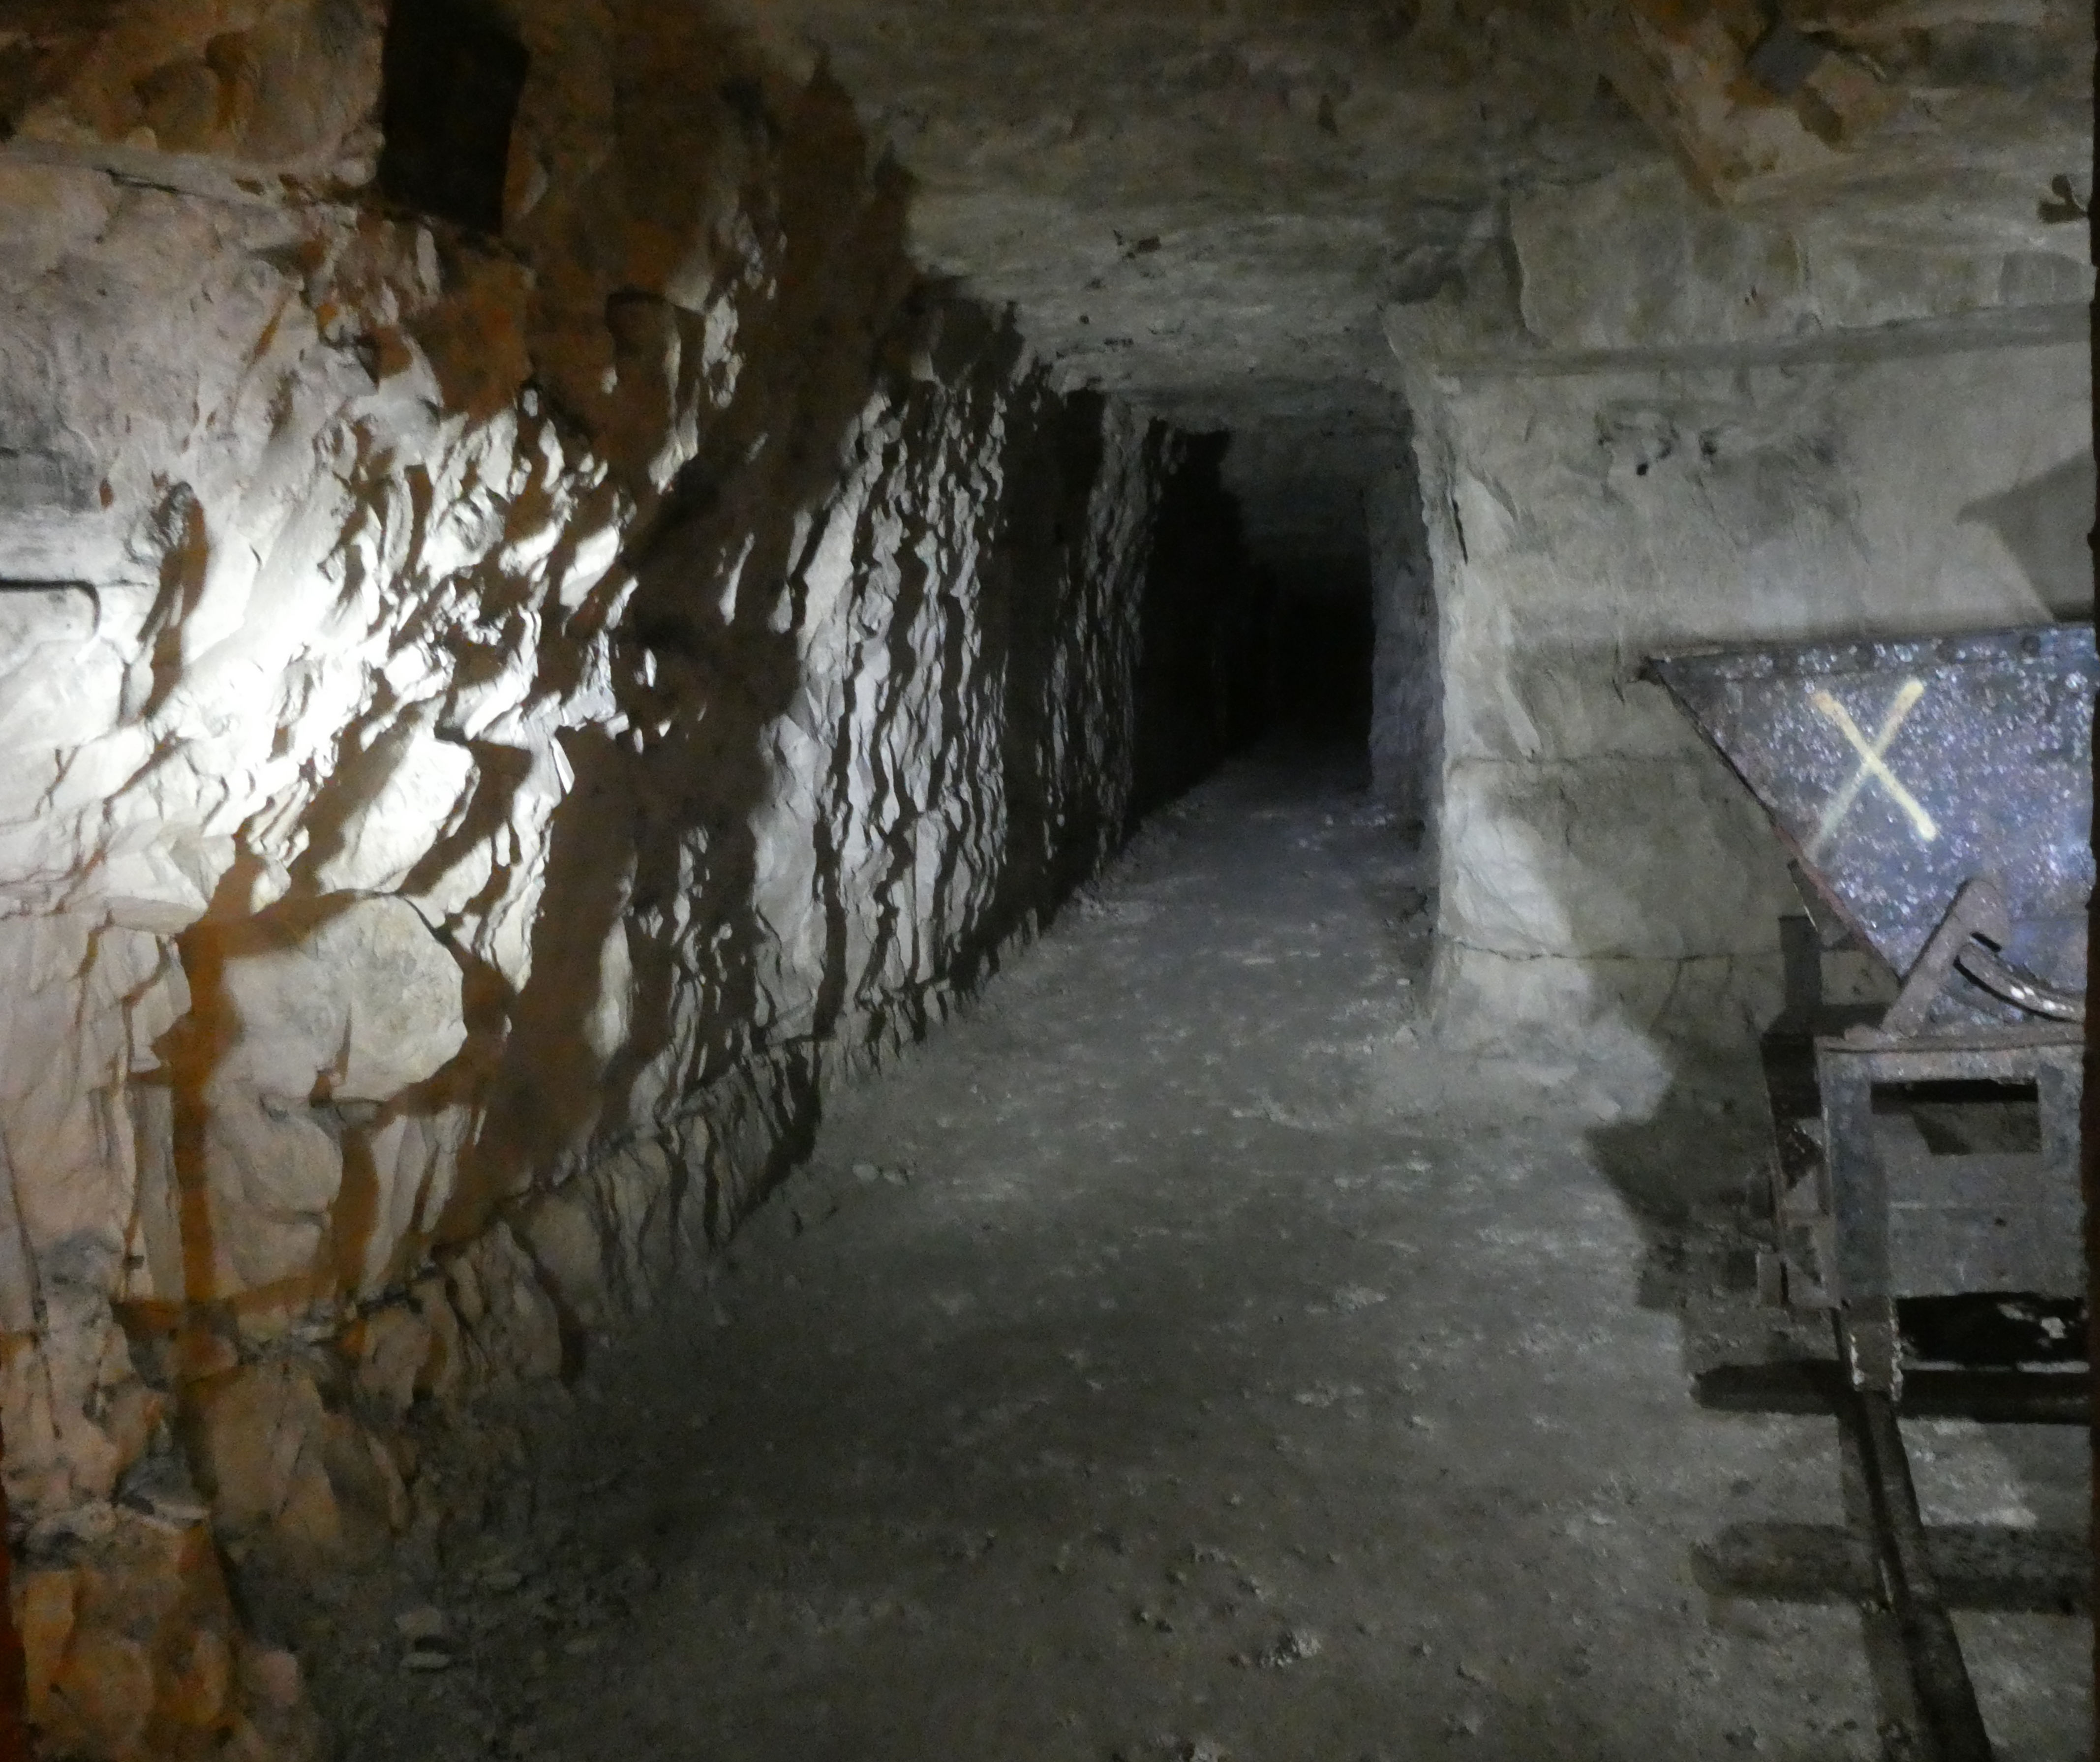 Welling Quarry - The Tunnels